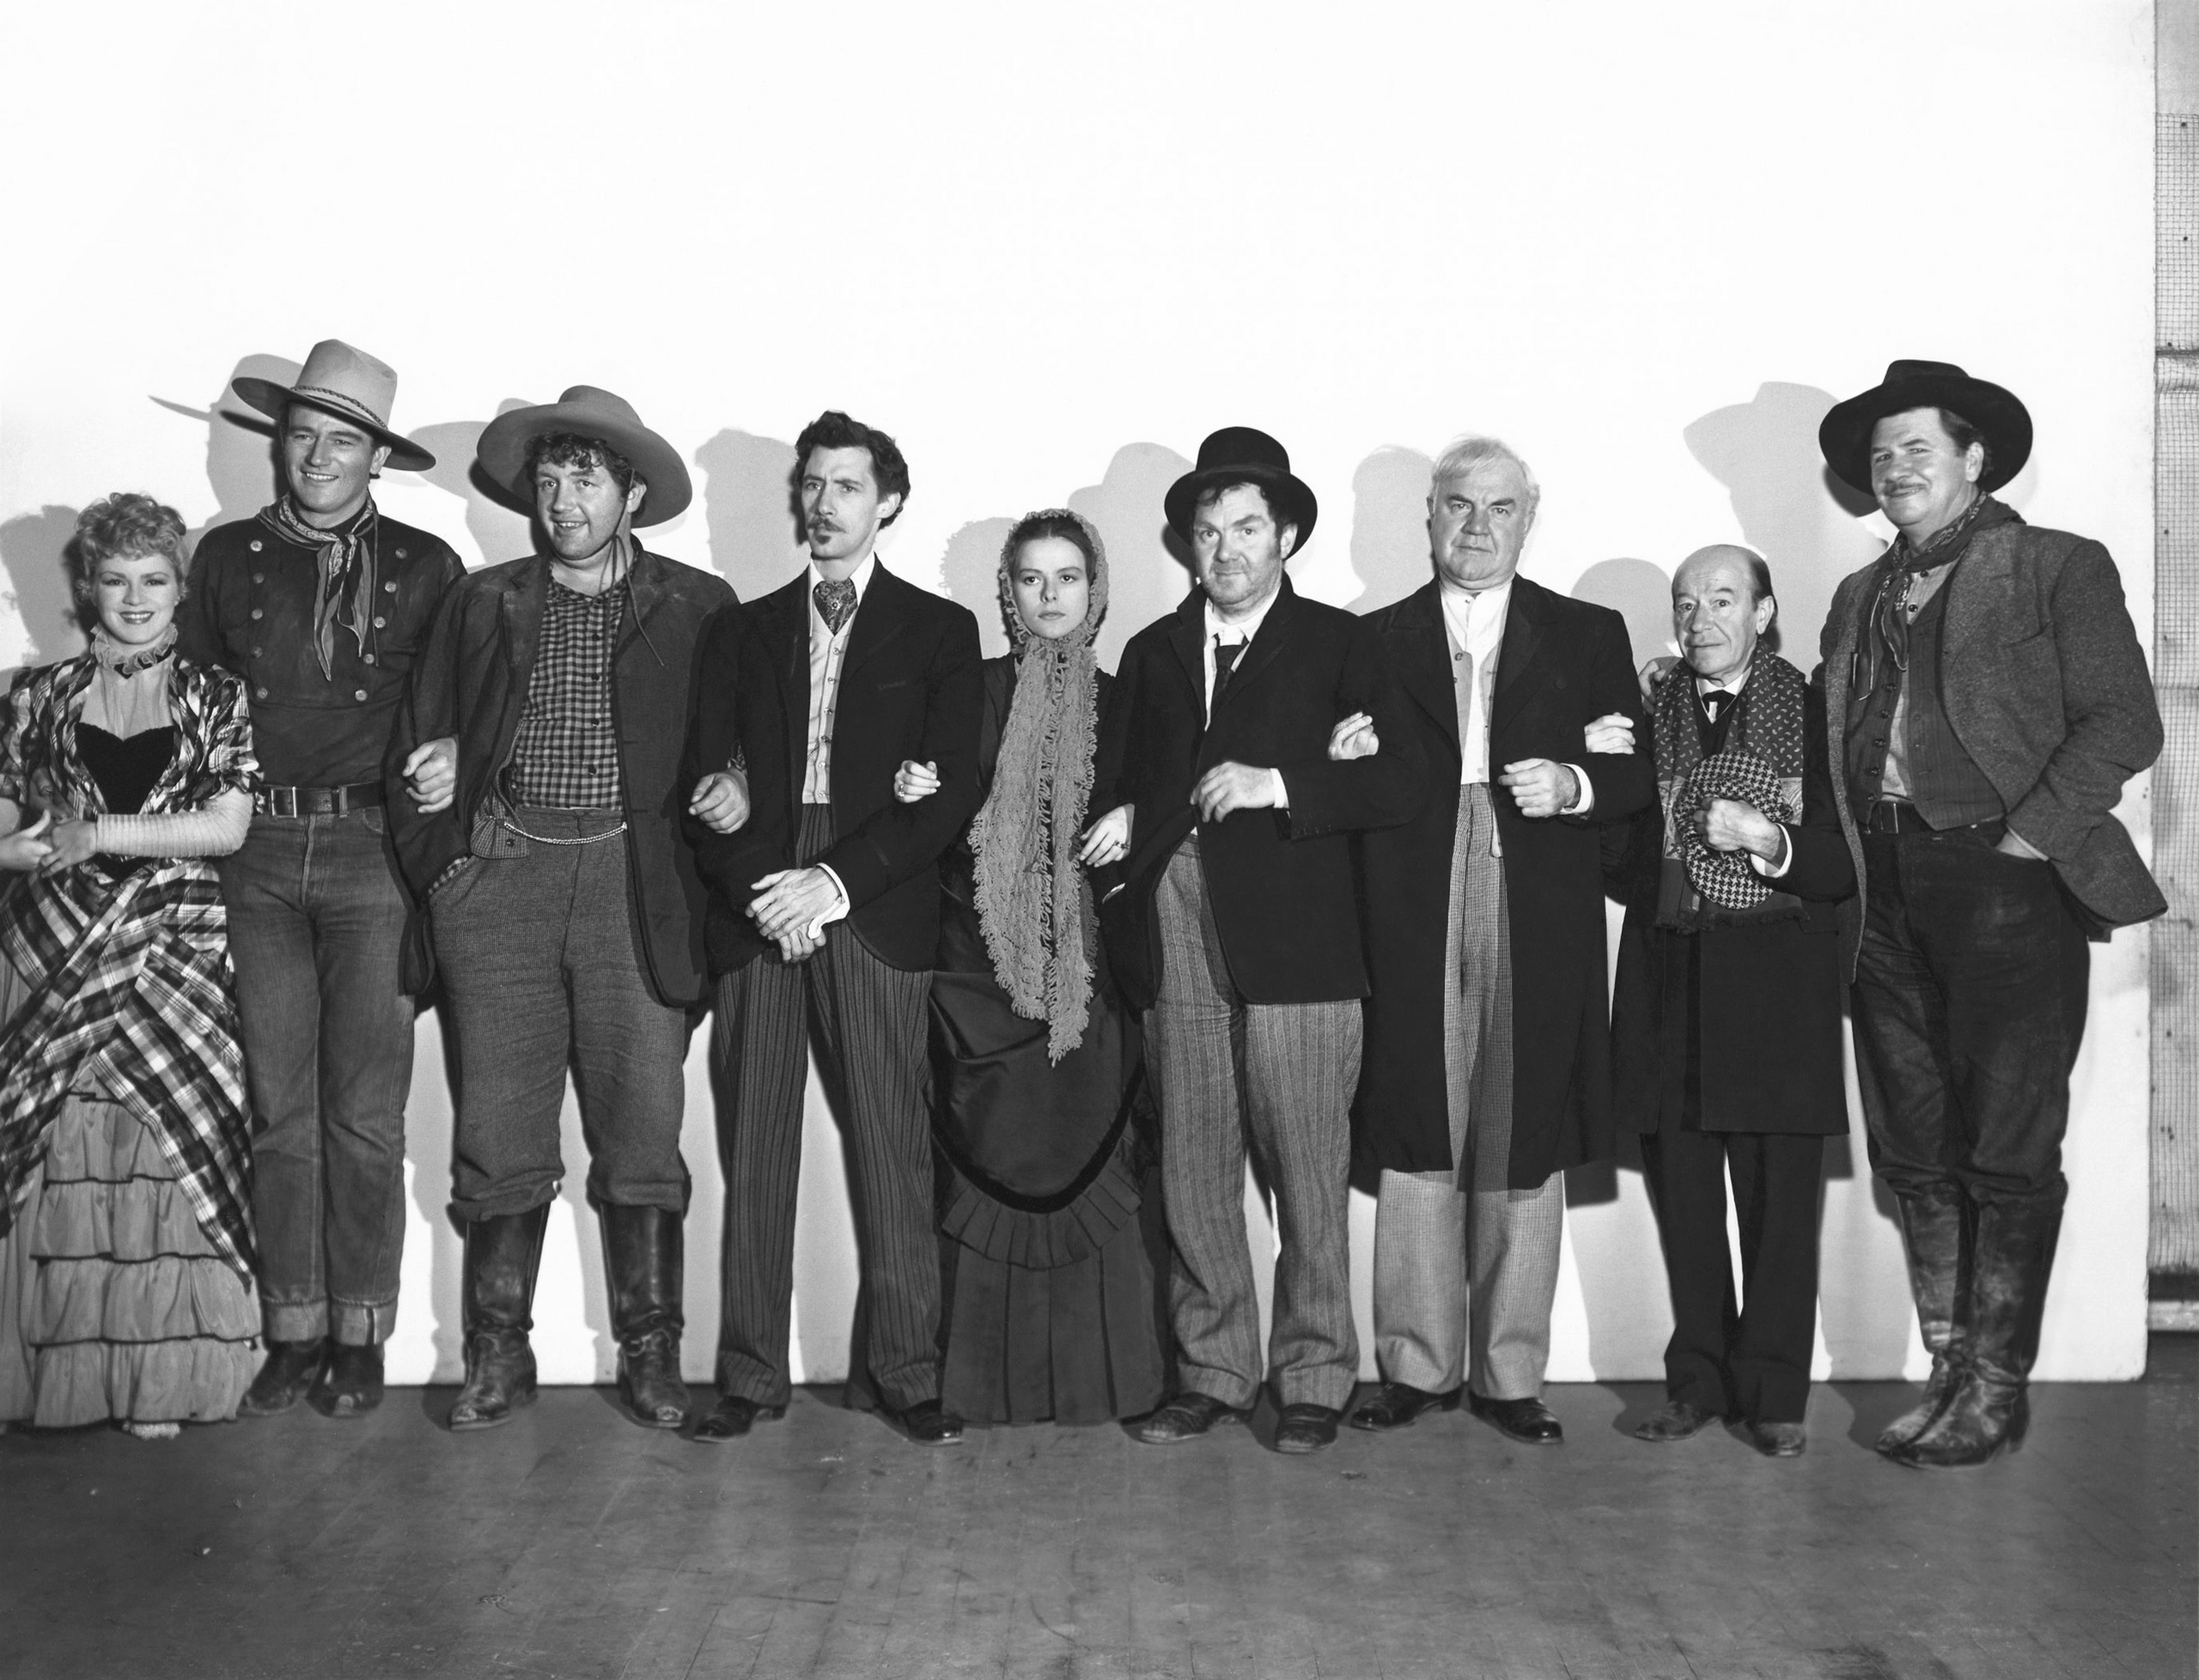 -Stagecoach-John-Wayne-and-friends-off-set-stars-from-the-past-31735629-2560-1956.jpg